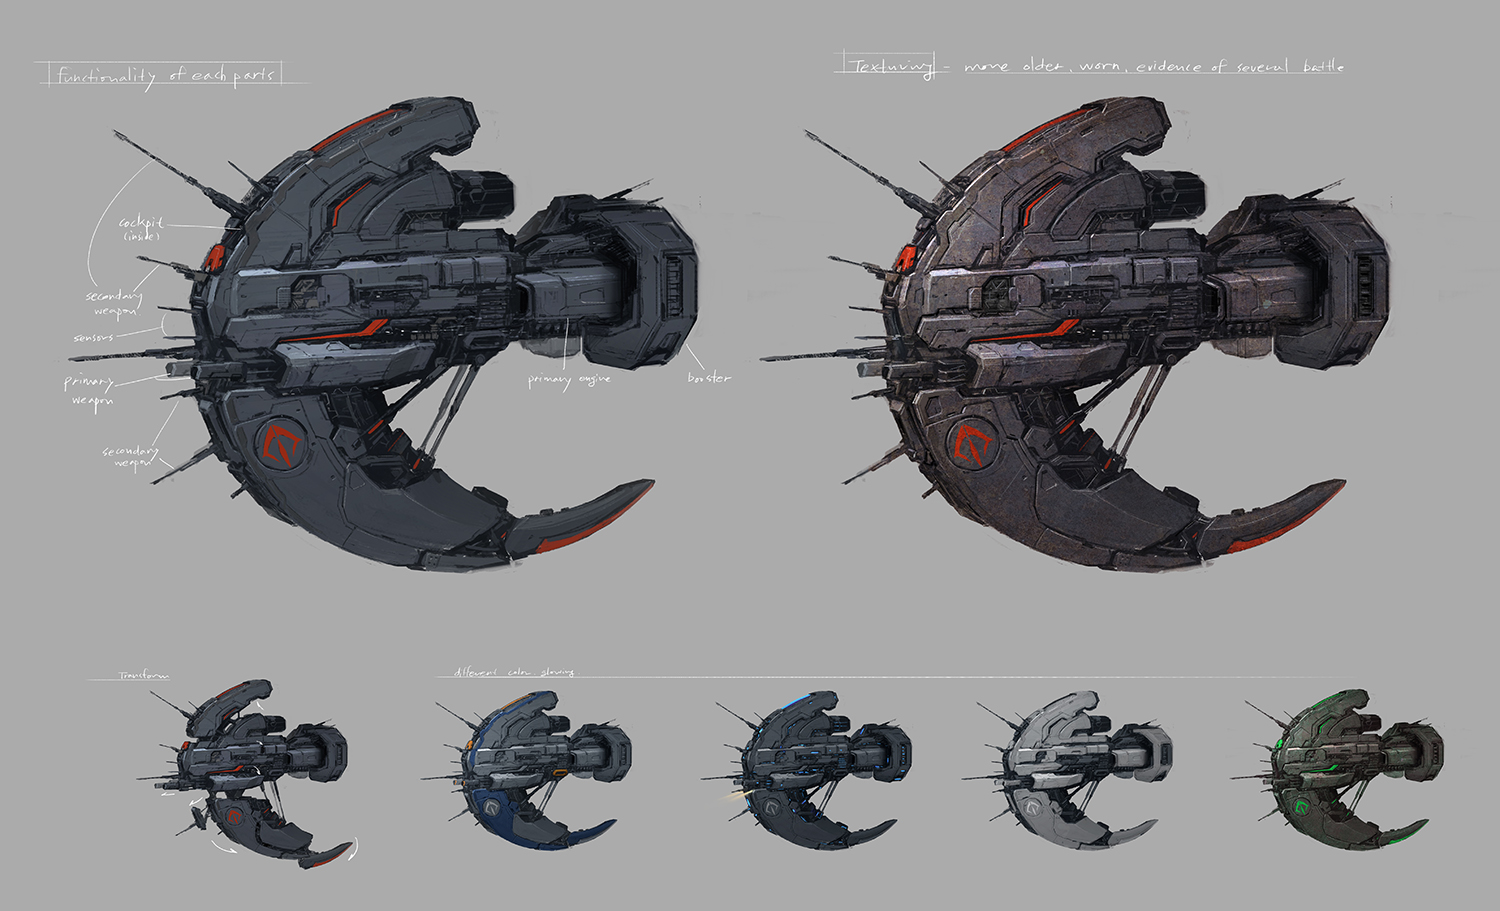 space ship concept art